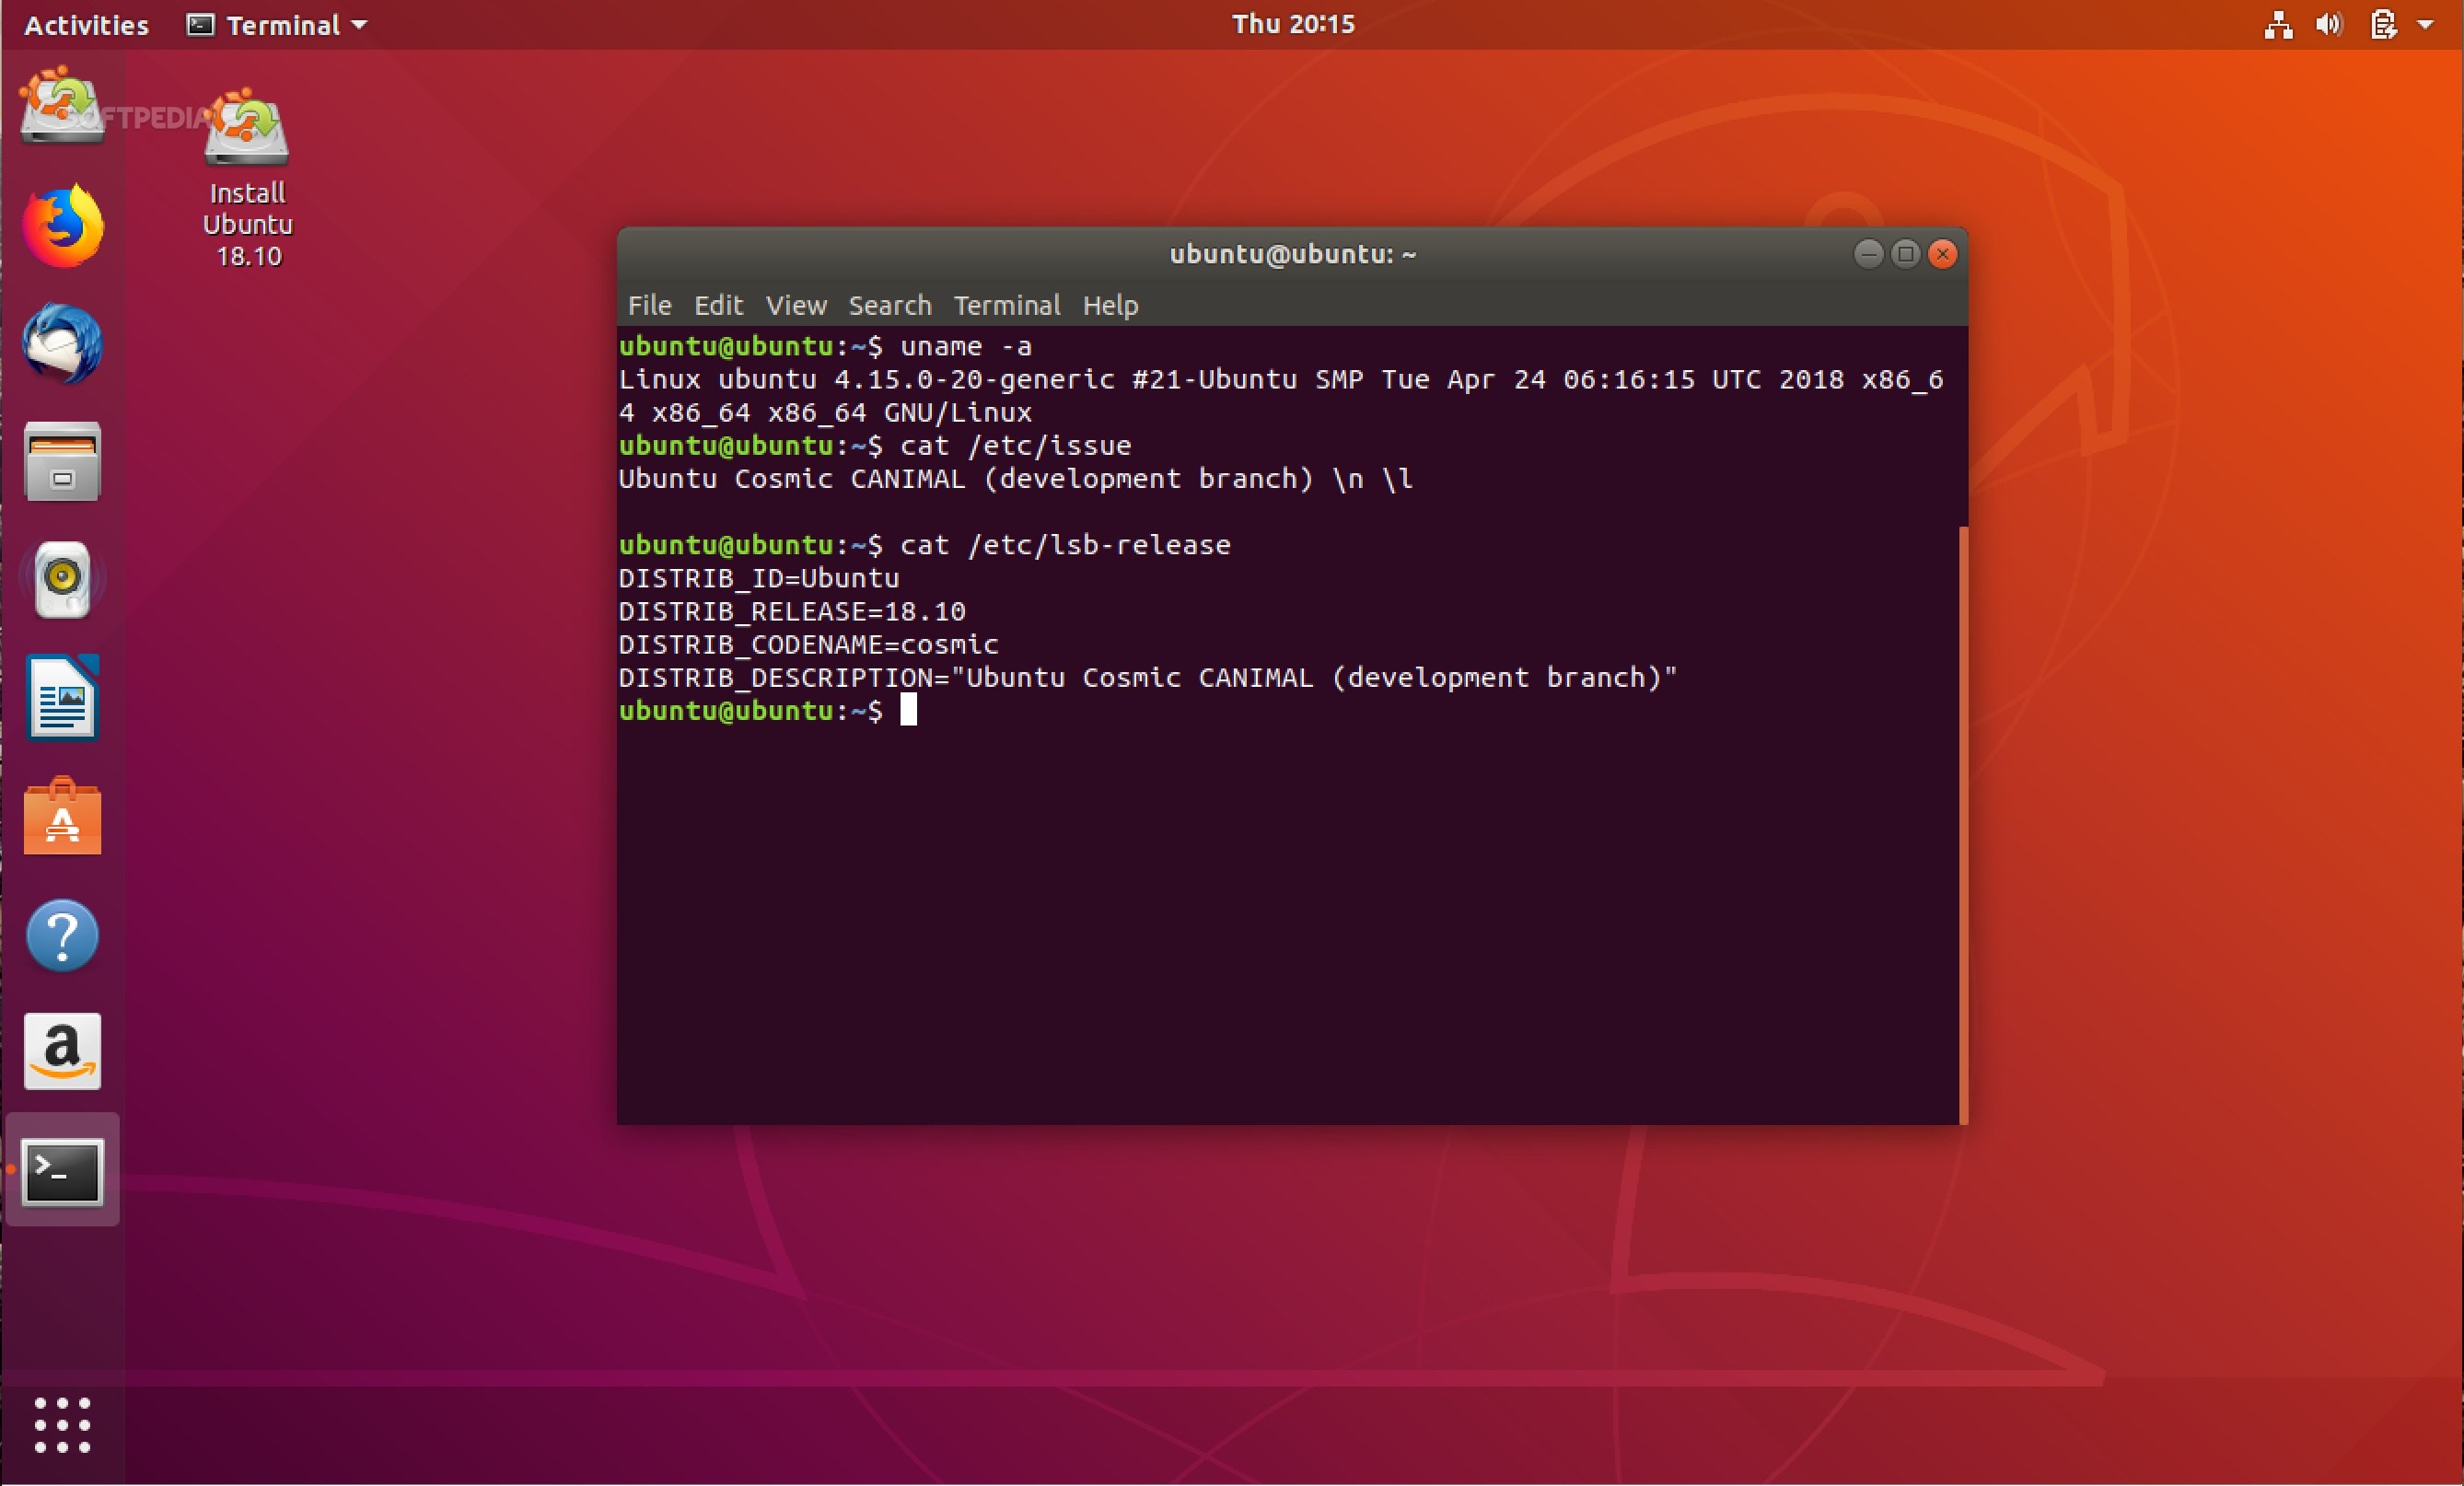 Ubuntu 18.10 Daily Build ISOs Are Now Available to Download